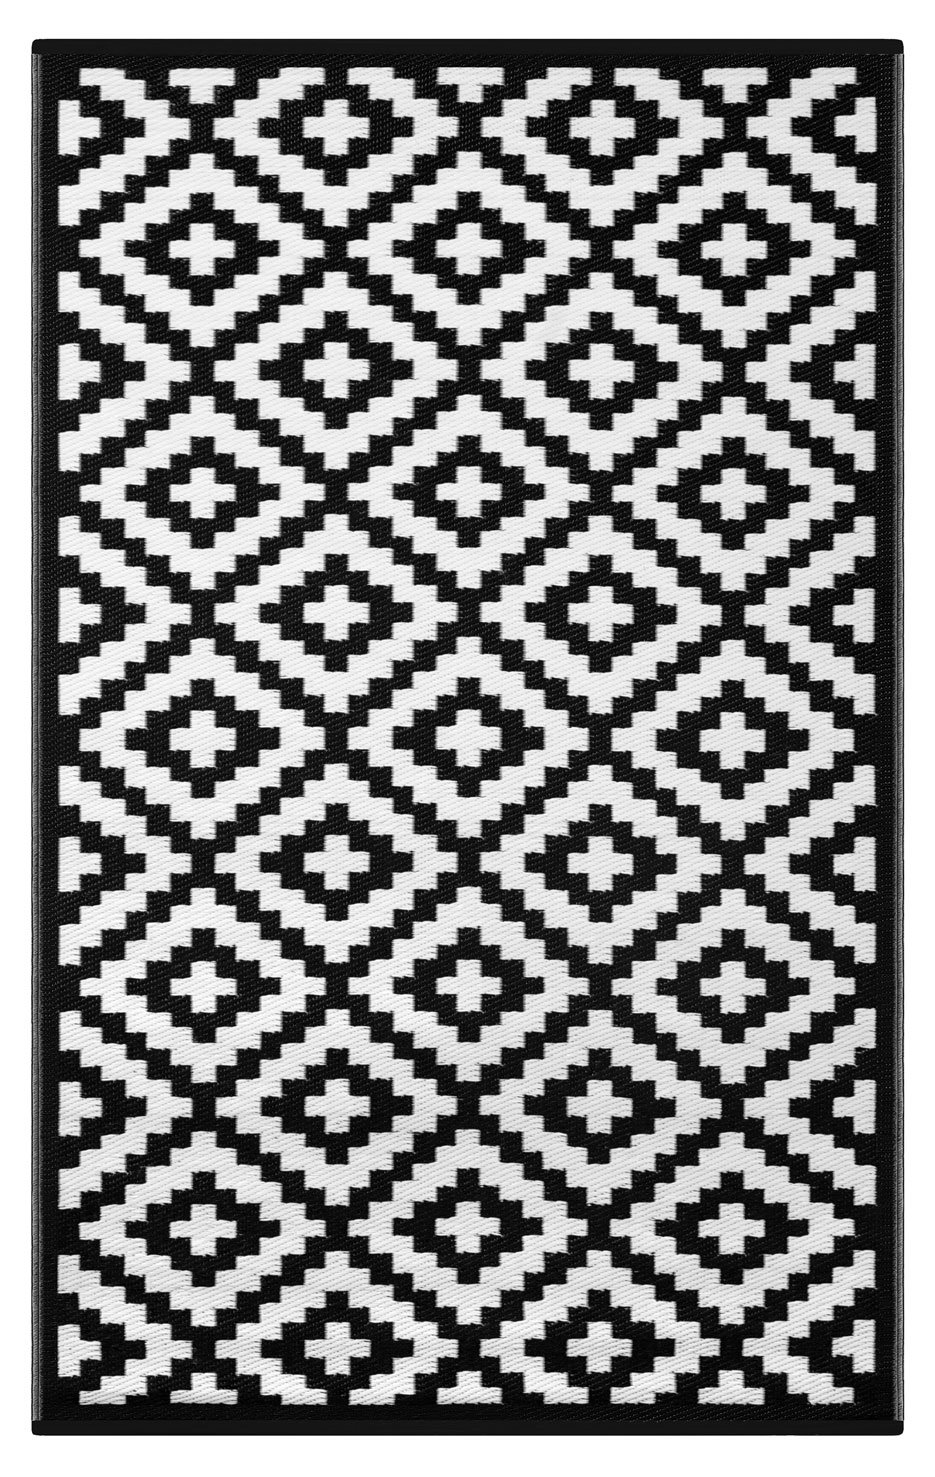 Lightweight Outdoor Reversible Plastic Rug Nirvana Black / White - 180 cm x 270 cm (6ft x 9ft) by Green Decore